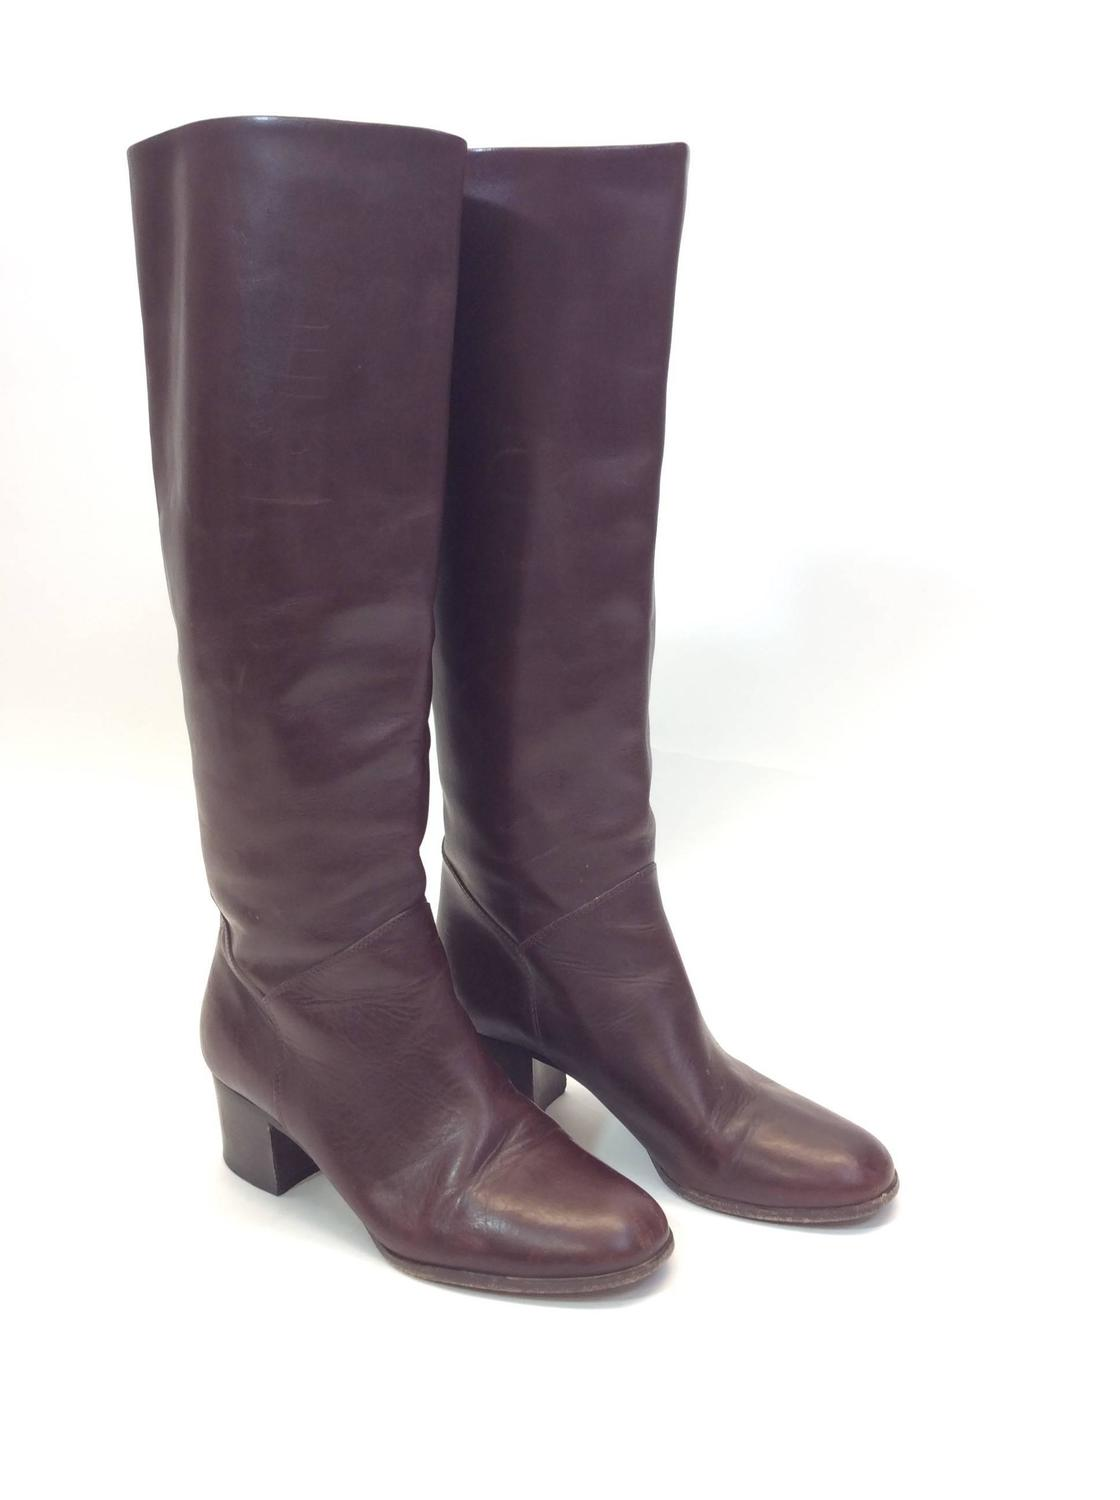 chanel high top chocolate brown leather boots for sale at